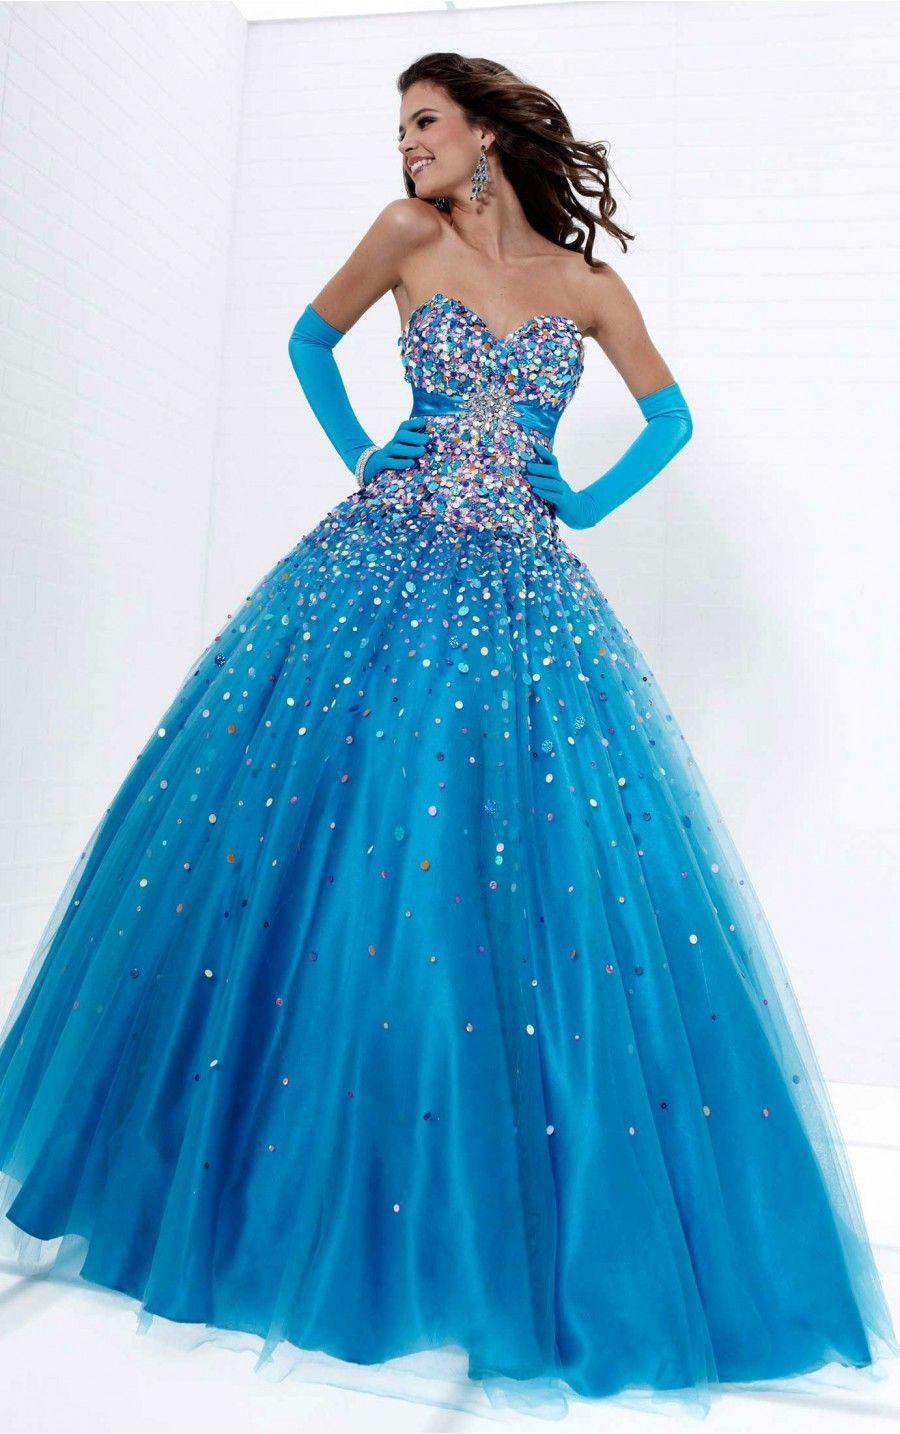 17 Best images about Blue ball gowns on Pinterest | Blue ball ...